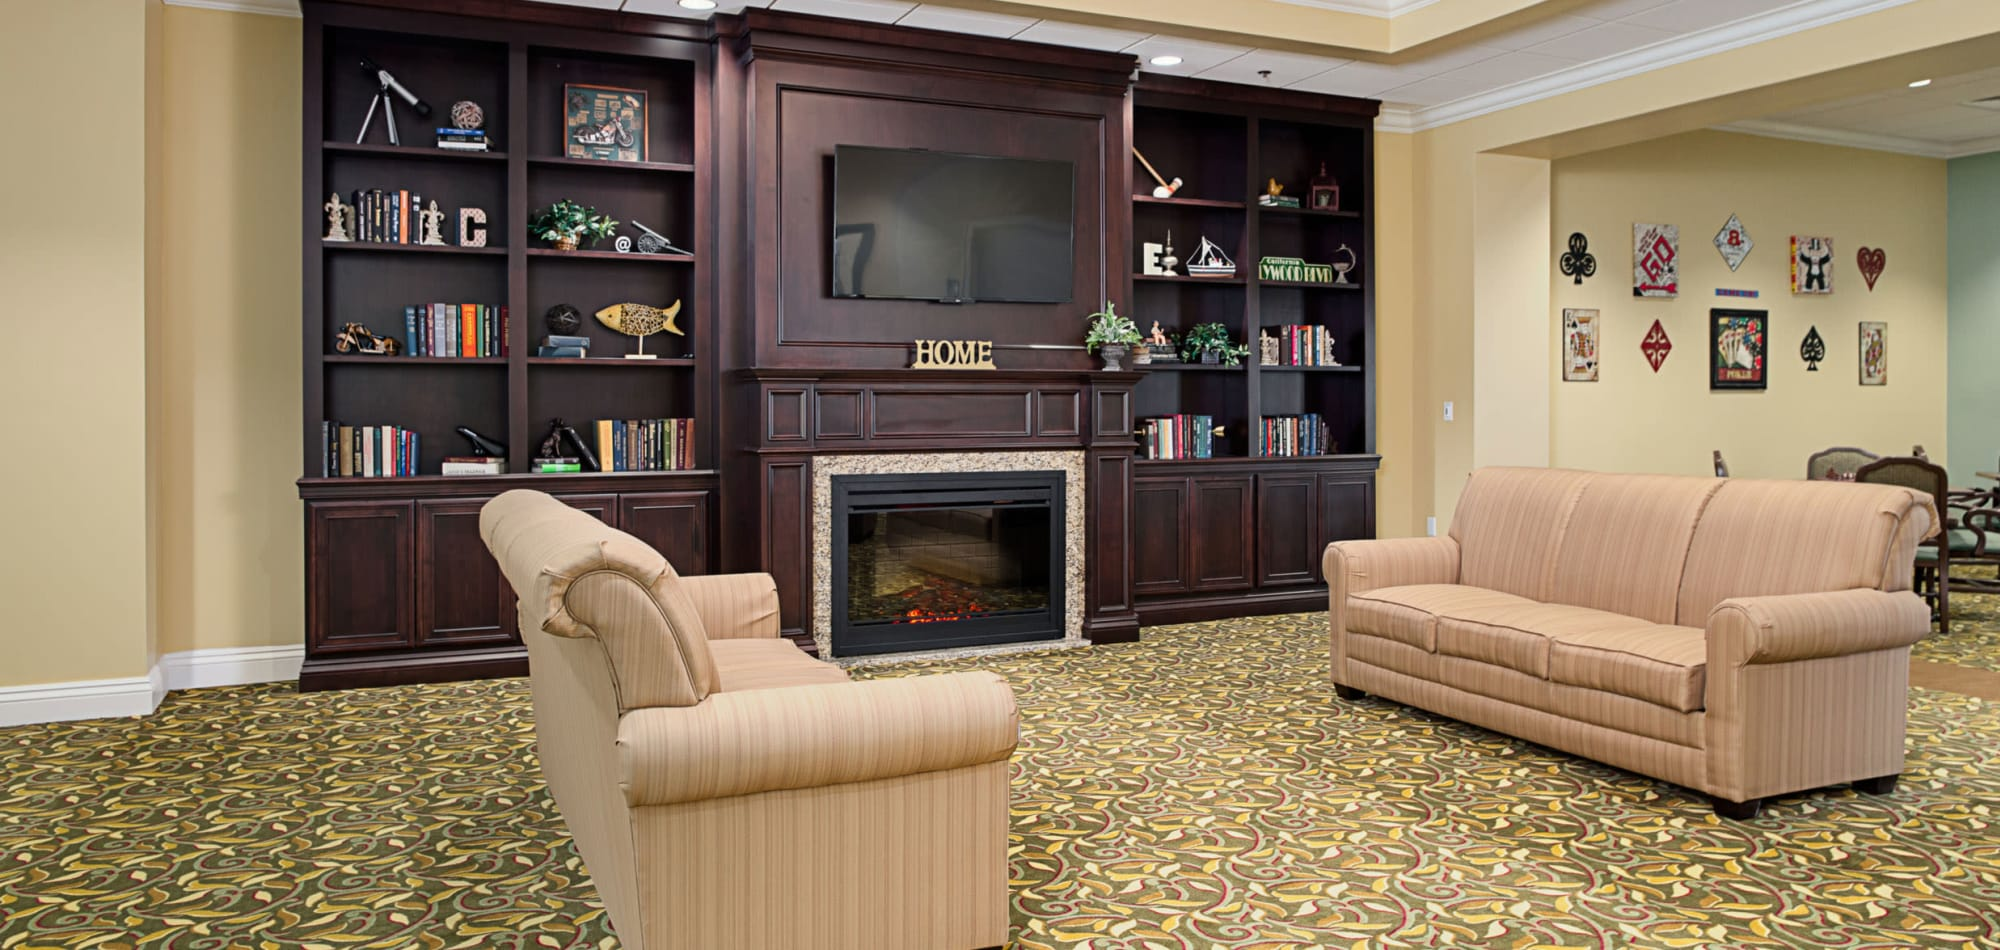 Grand Villa of DeLand in Florida senior living